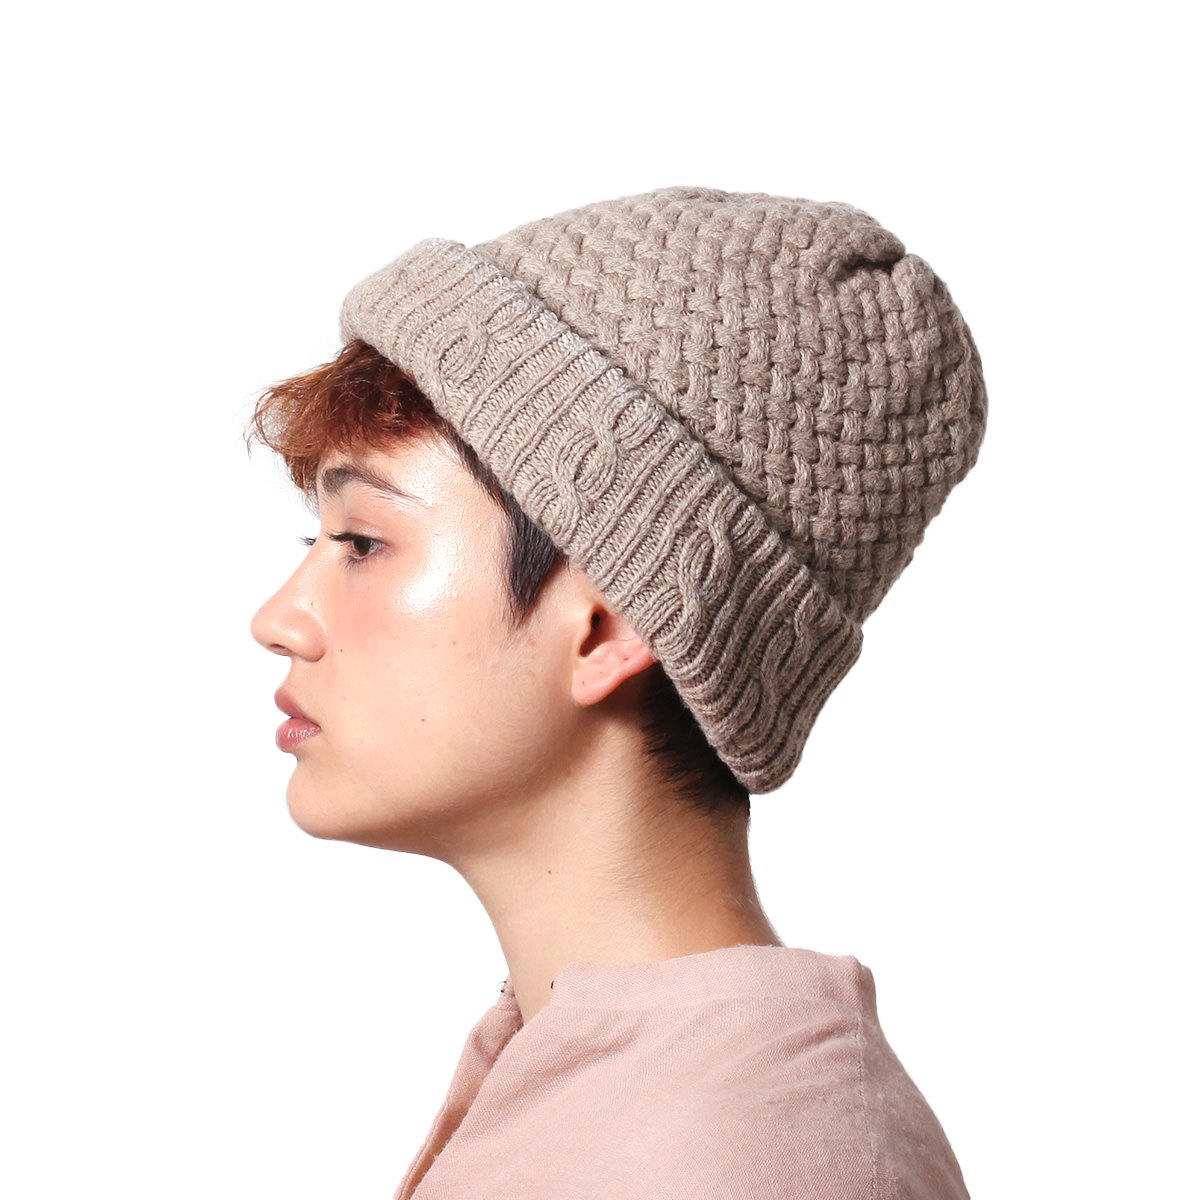 LIGHT-WEIGHT REVERSIBLE KNITCAP TYPE C 詳細画像9